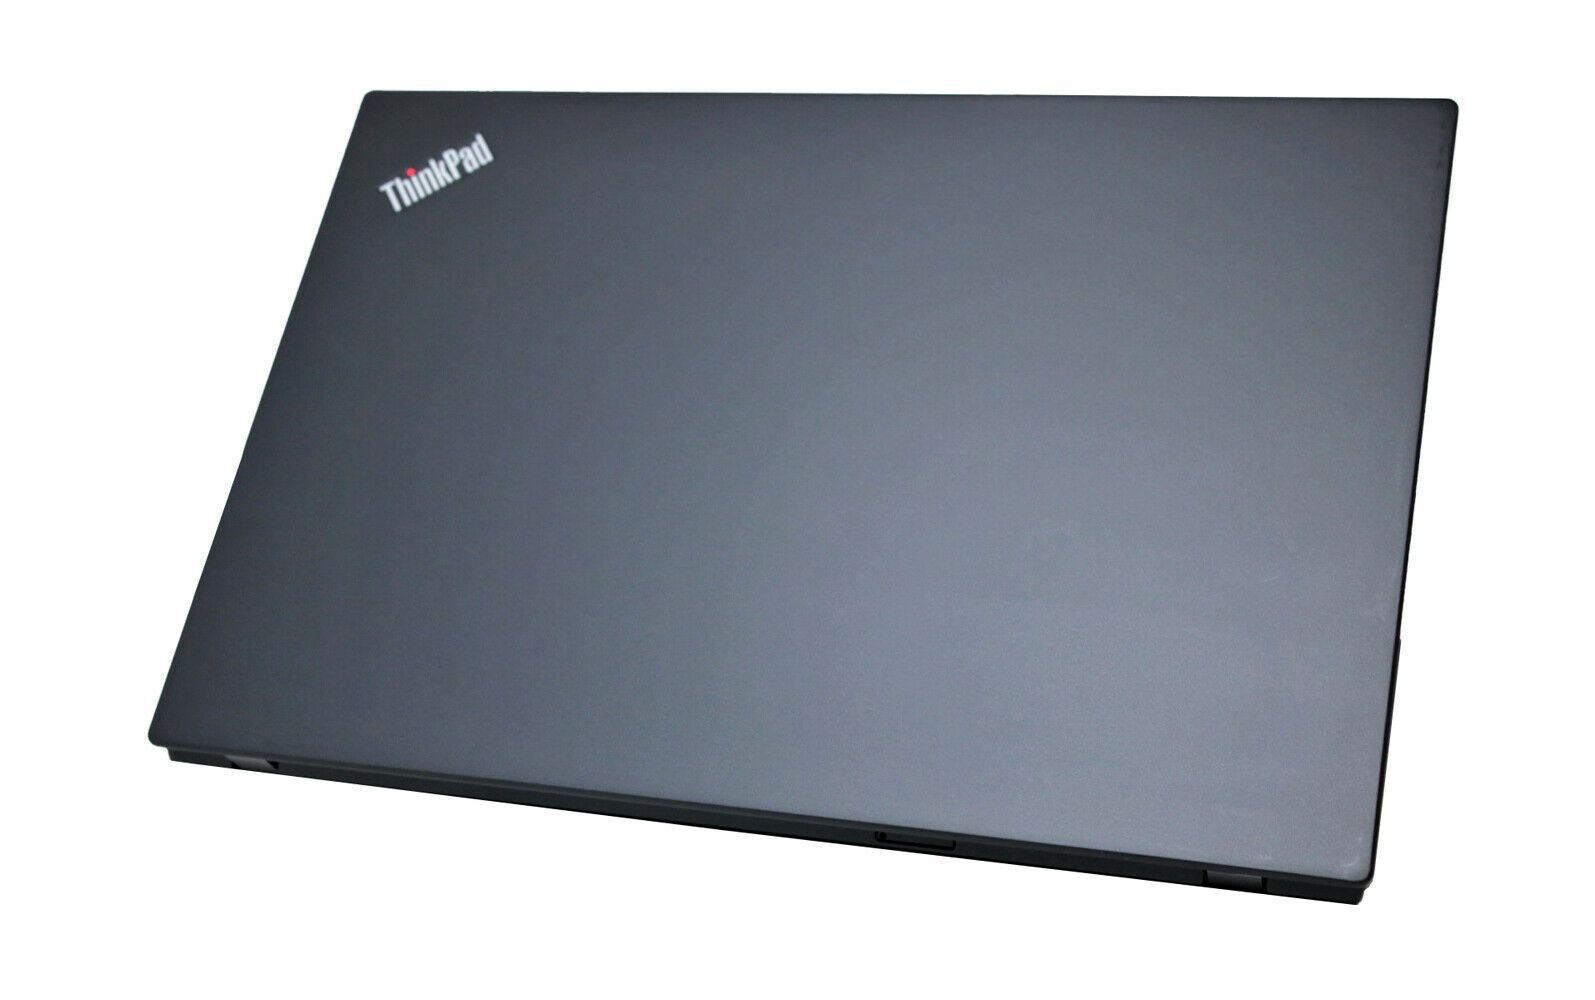 Lenovo Thinkpad X280 UltraBook: Core i5-8350U, 256GB, 8GB RAM, Warranty, 1.2Kg - CruiseTech